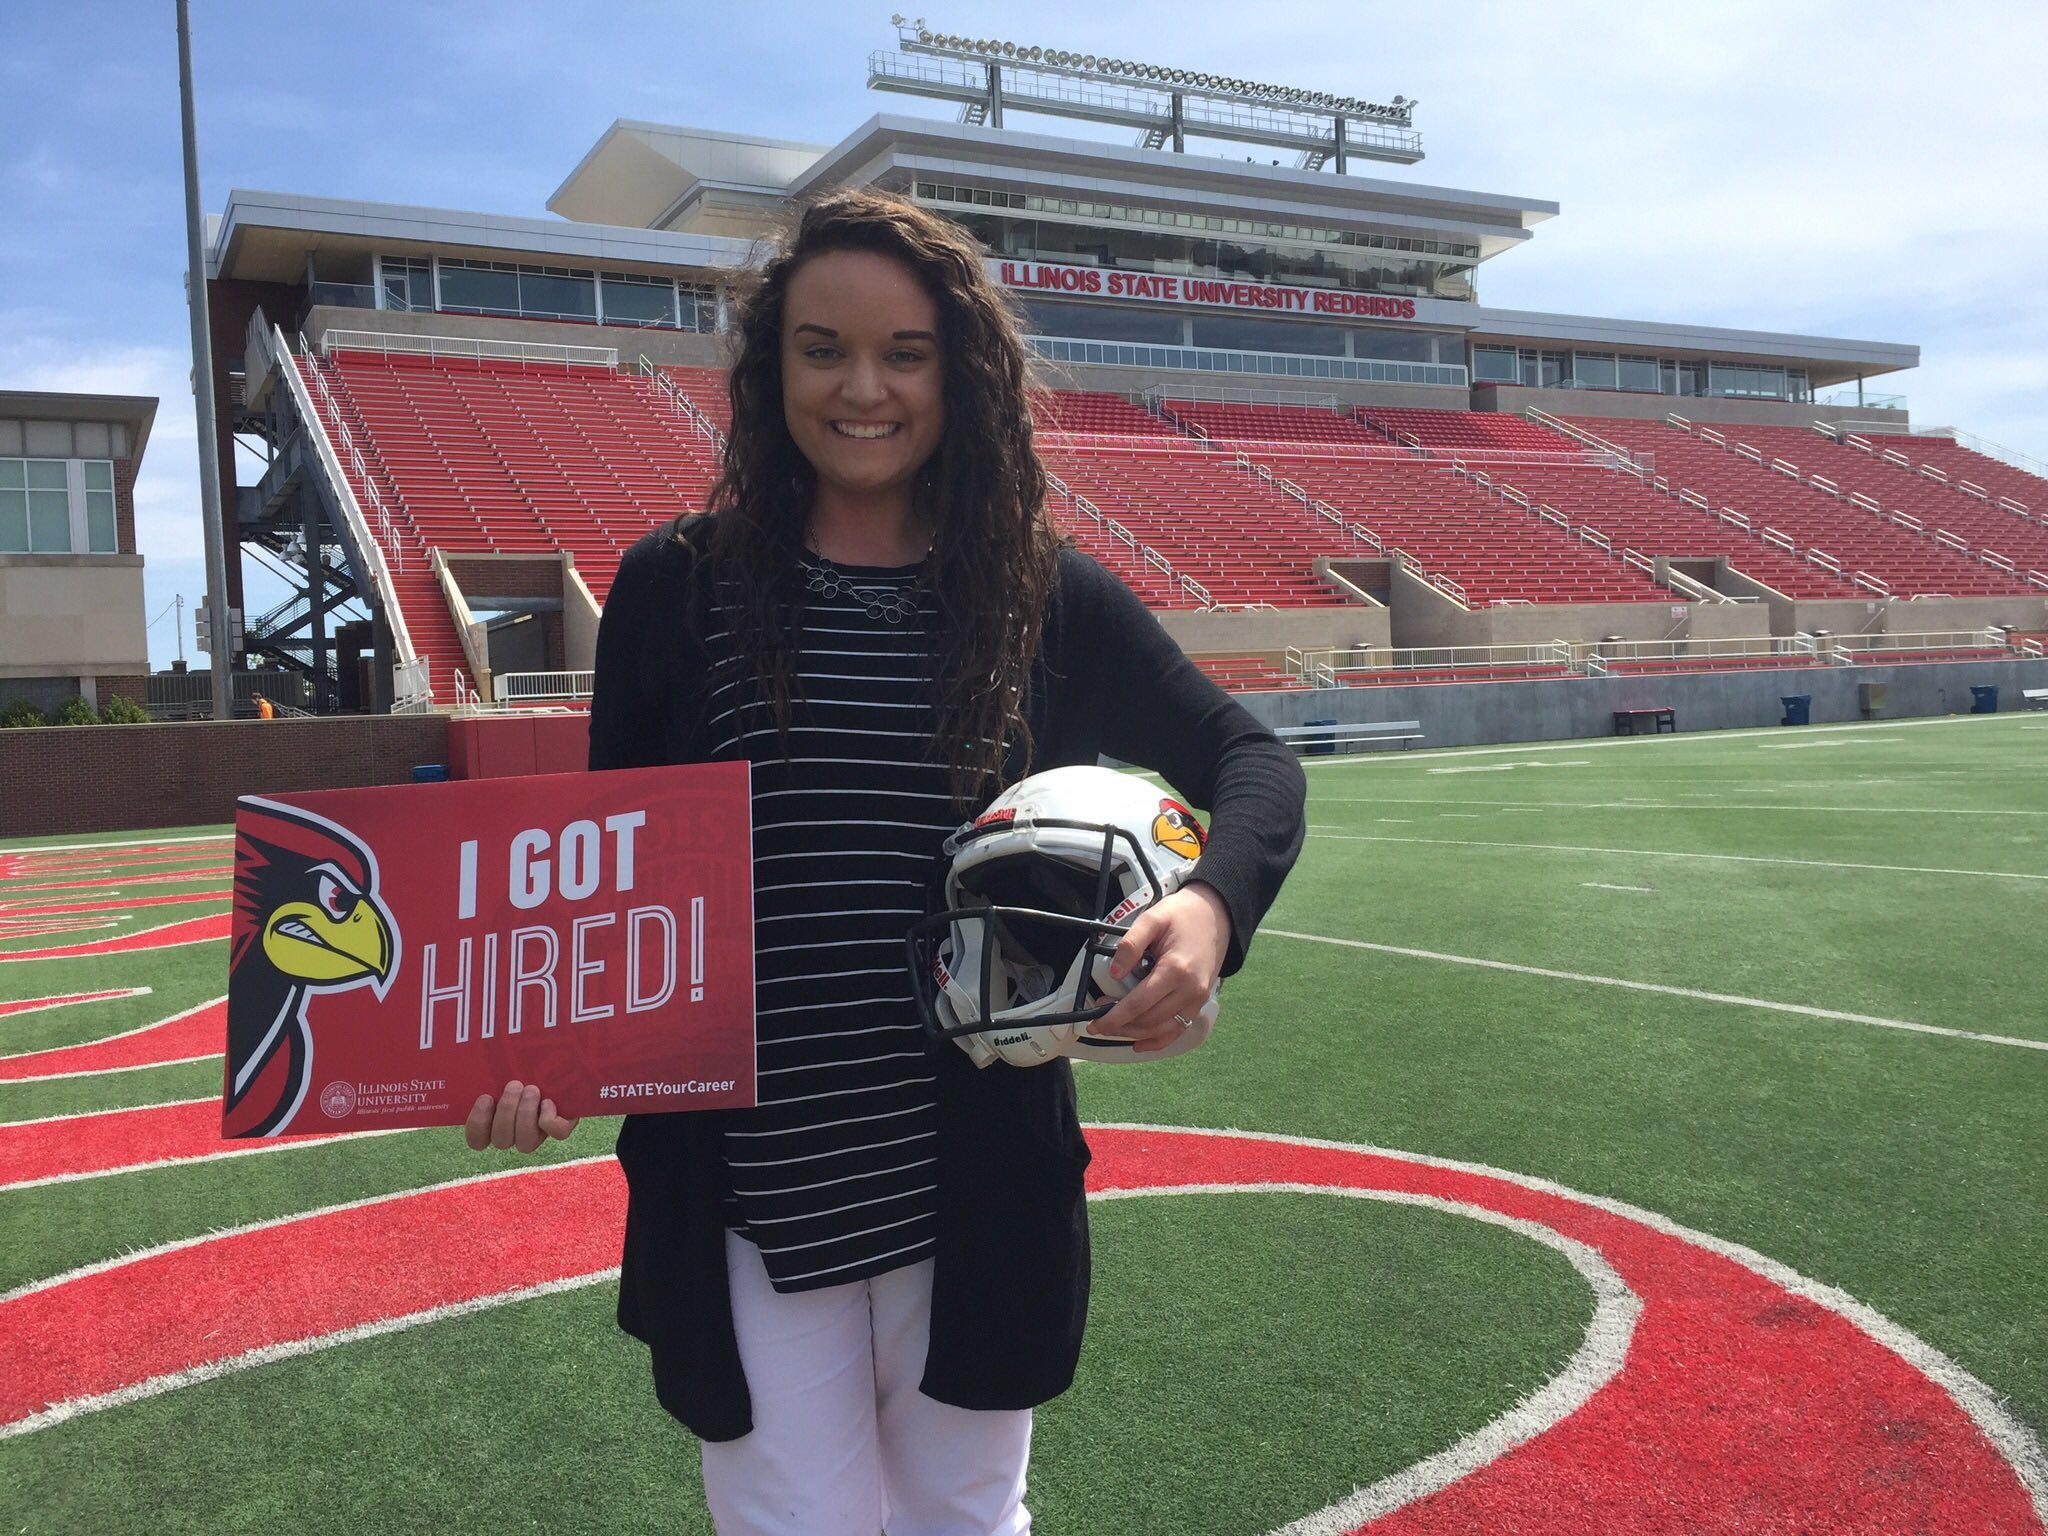 Congrats to @ISUSOC PR major and key member of our media crew @KaitlinGHoffman who is headed to work with the @CFAPeachBowl #STATEYourCareer https://t.co/1QYsH4isJY